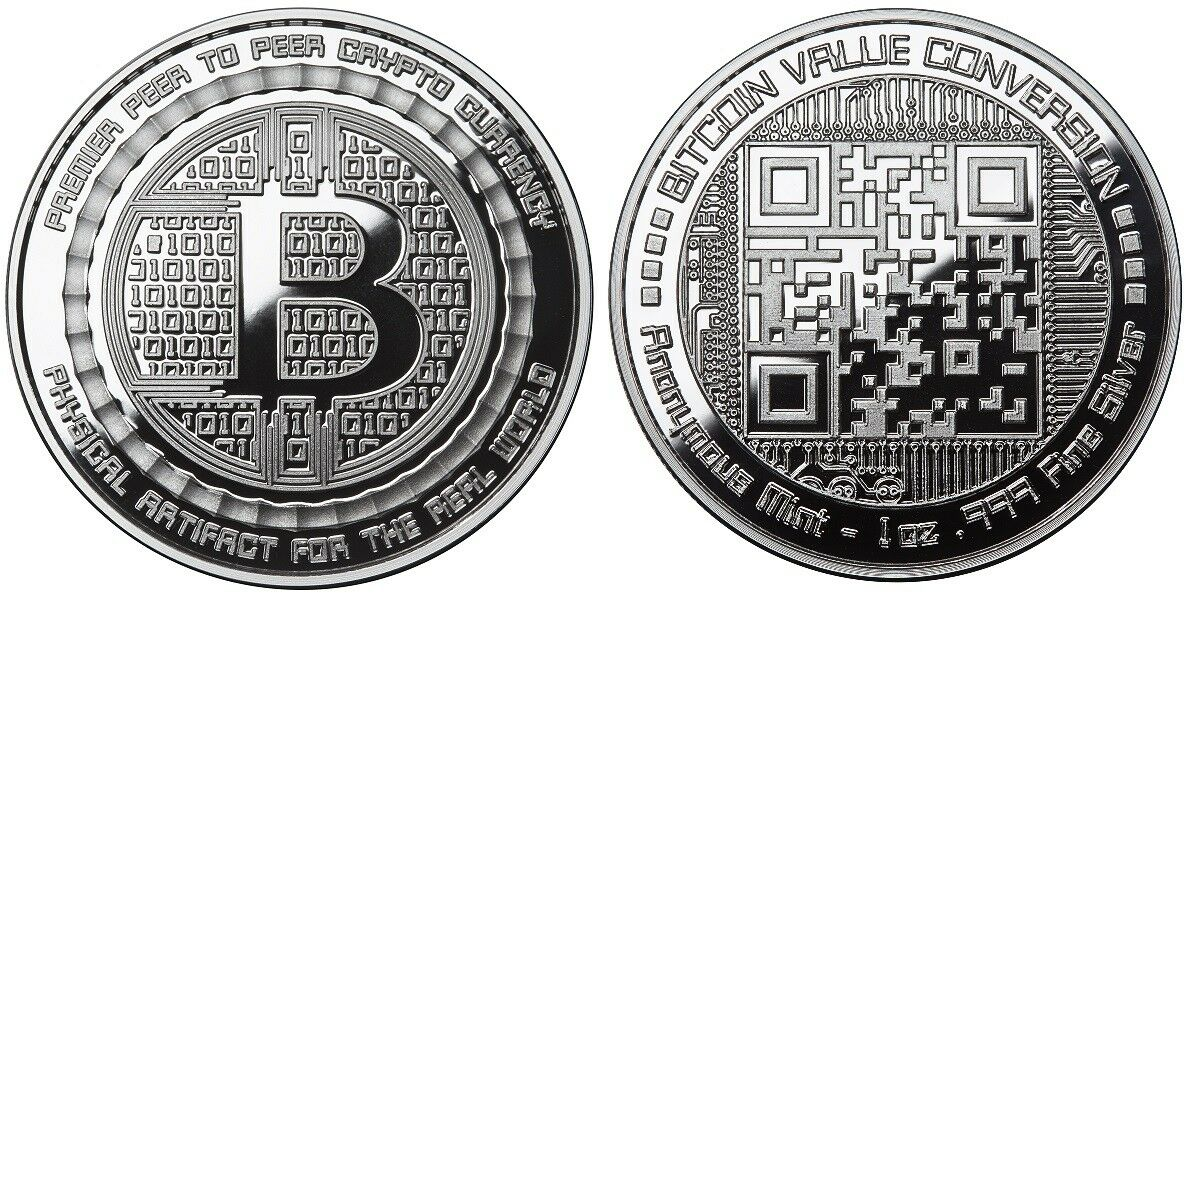 Bitcoin Proof 1 Oz 999 Silver Bitcoin Qr Code Value